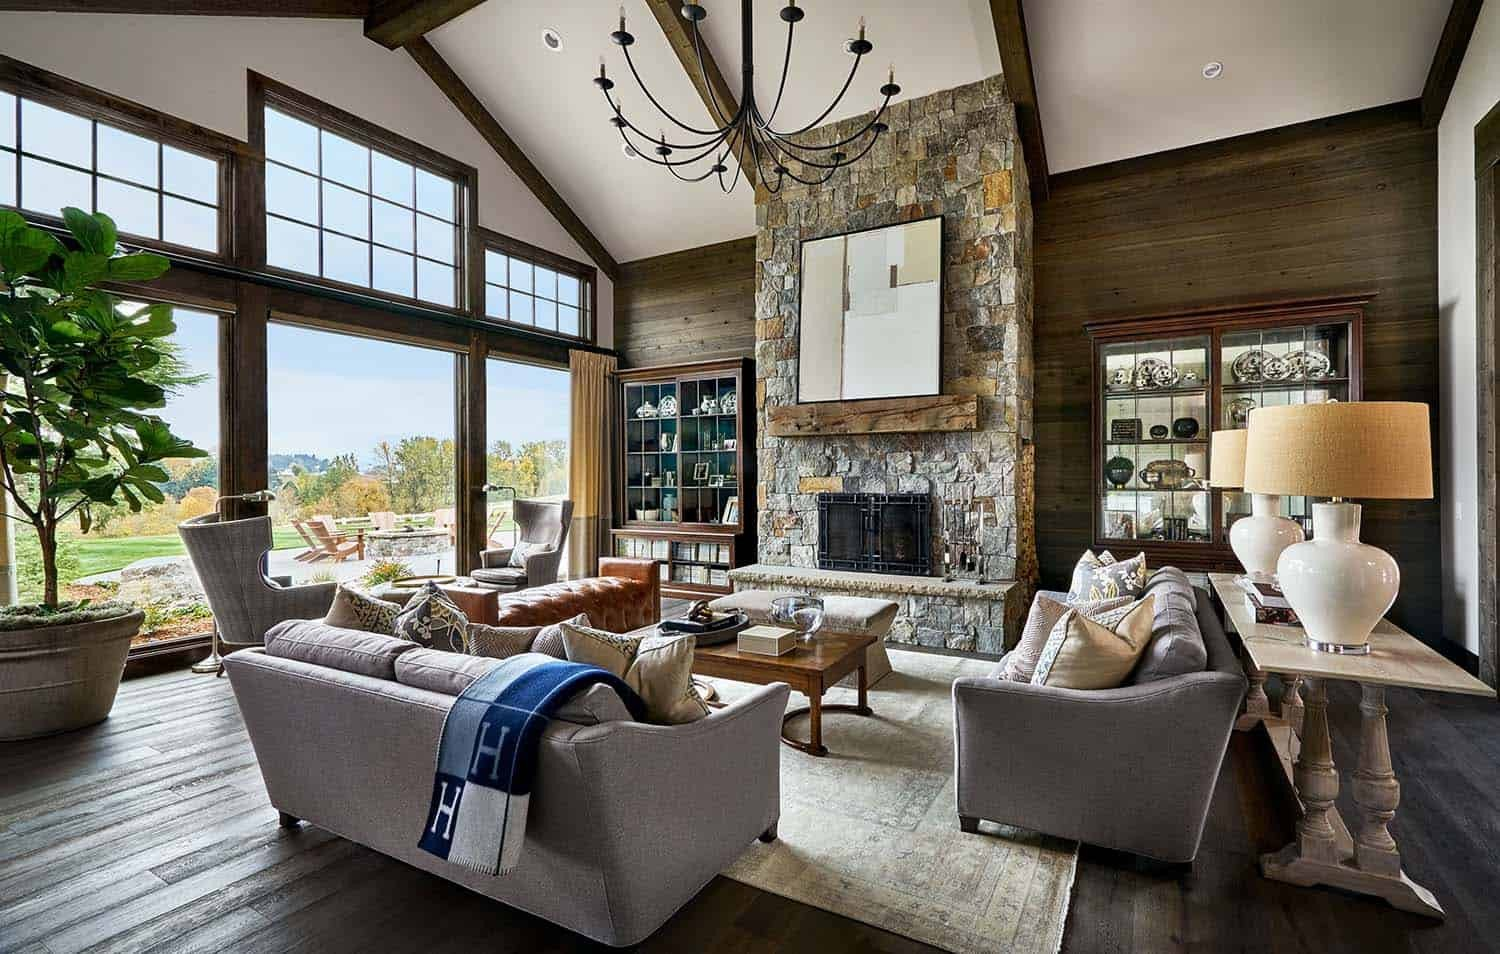 Contemporary Rustic Living Room Lovely Contemporary Rustic Farmhouse with Stunning Living Spaces In Rural oregon